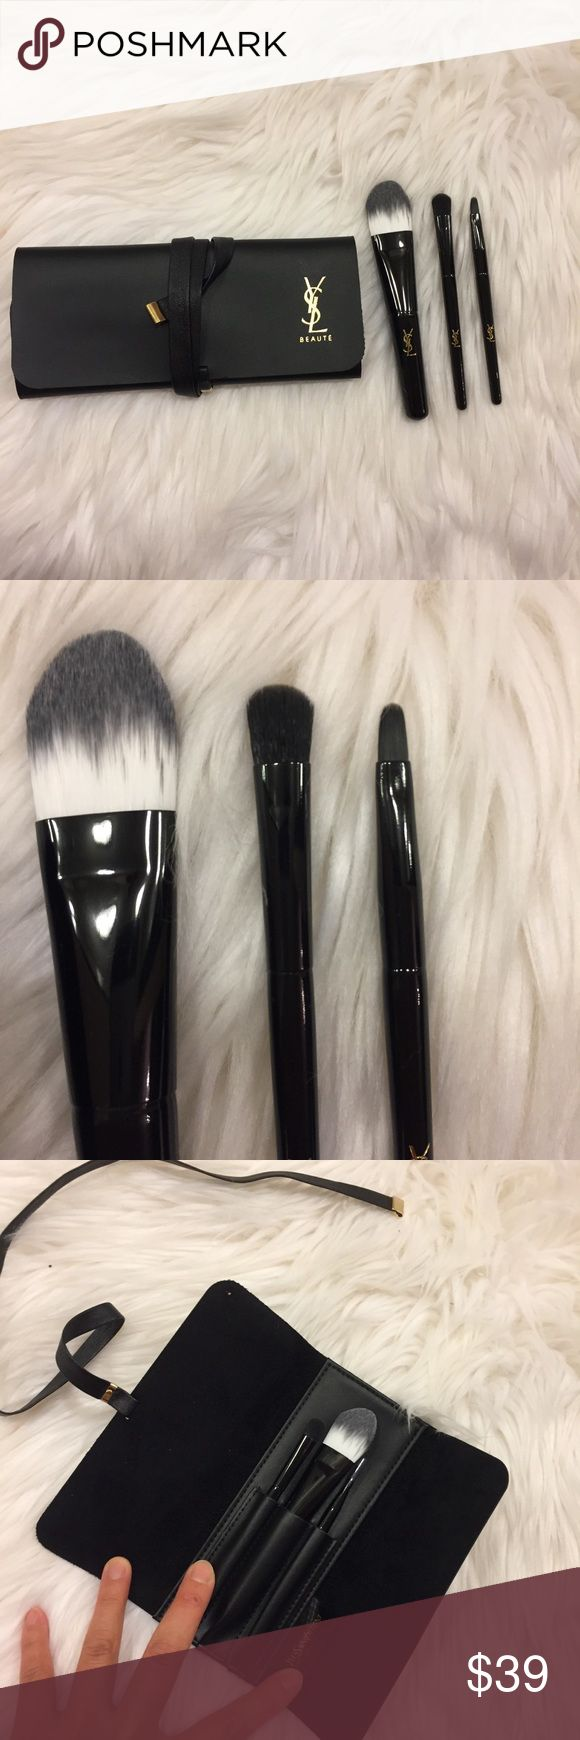 YSL beauty travel size makeup brush set Never used new